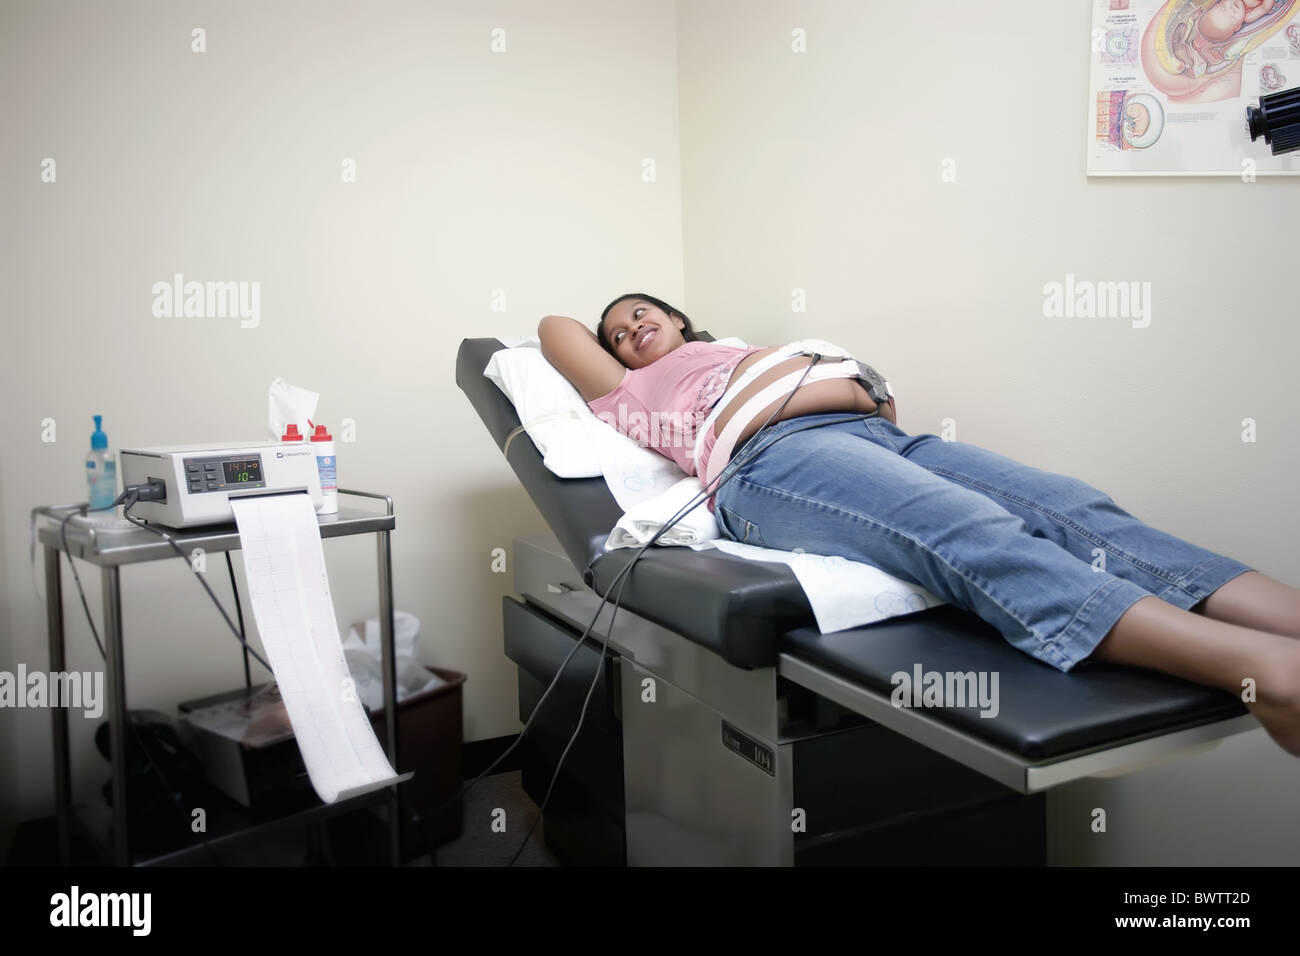 Pregnant mother during a fetal heart monitoring check-up - Stock Image